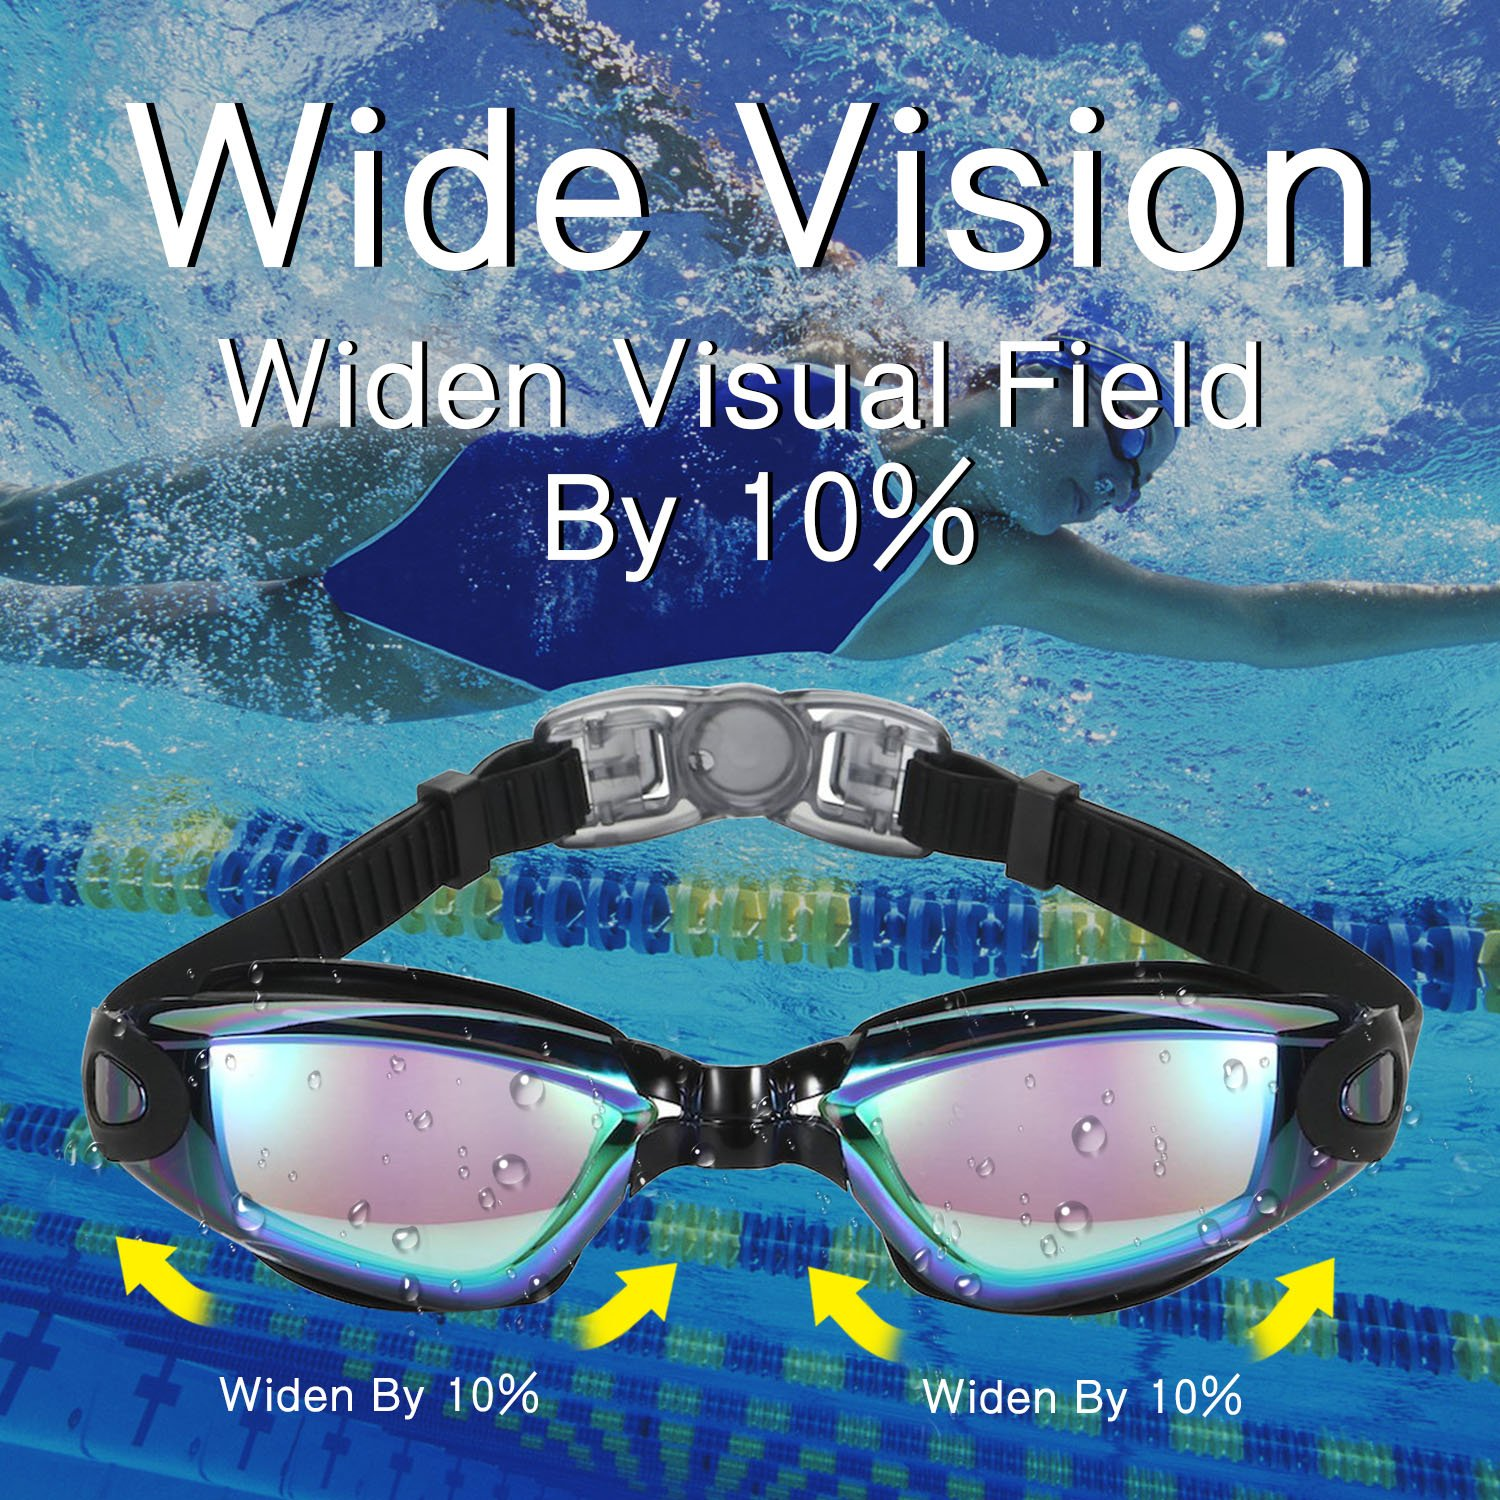 black MYADDLOT 3D Ergonomic Swimming Goggles Swim Goggles Professional Anti Fog No Leaking UV Protection Wide View For Women Men Adult Youth Kids Waterproof Smartphone Case